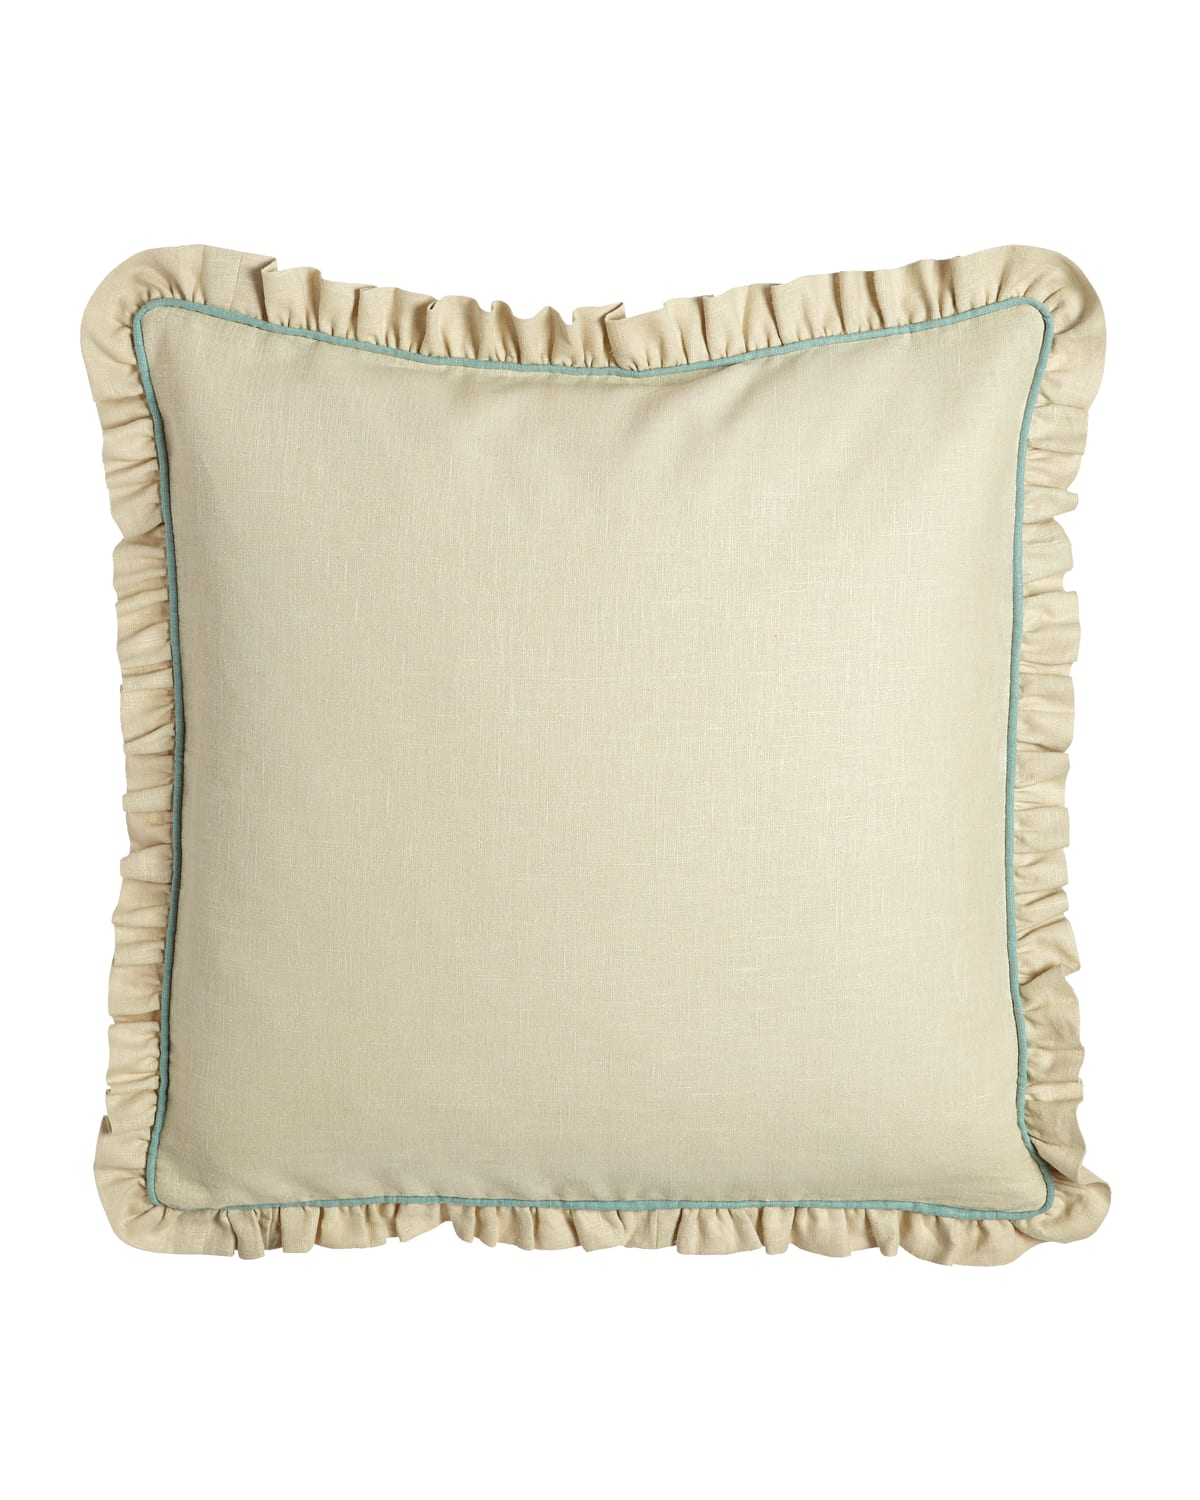 Sherry Kline Home Bliss Ruffled European Sham